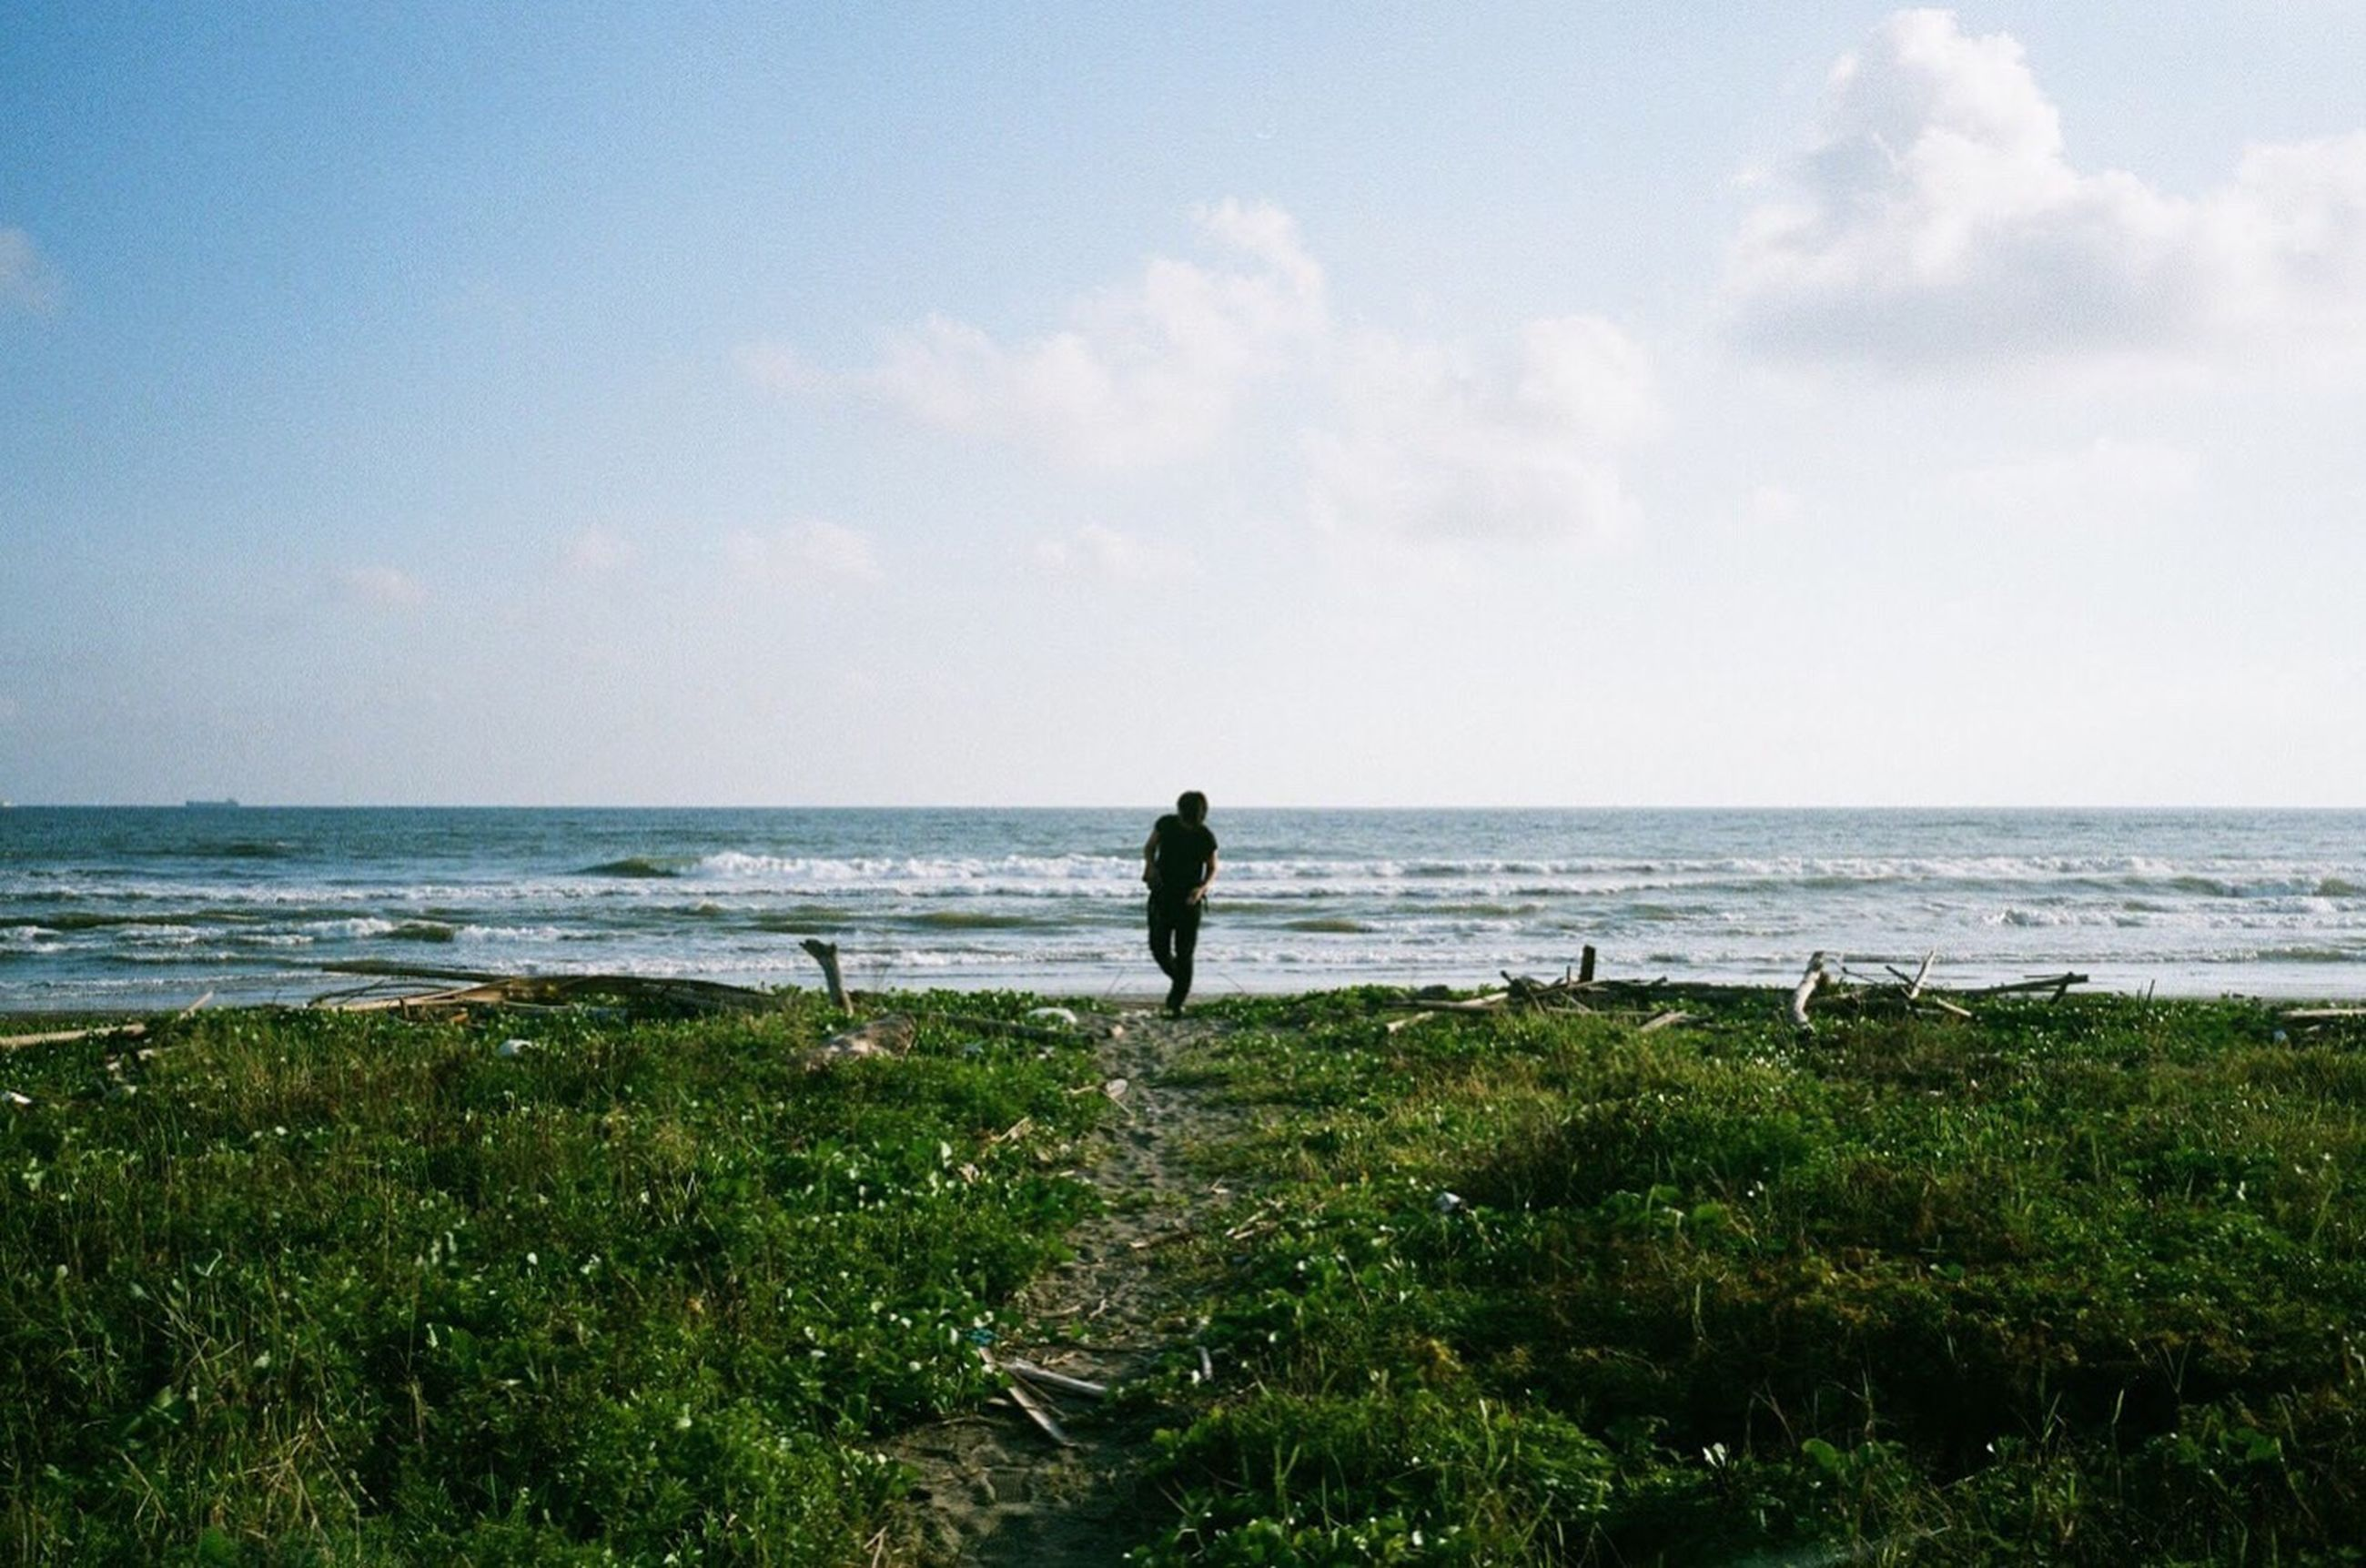 sea, horizon over water, nature, water, sky, standing, beauty in nature, one person, tranquility, scenics, beach, tranquil scene, outdoors, full length, day, vacations, people